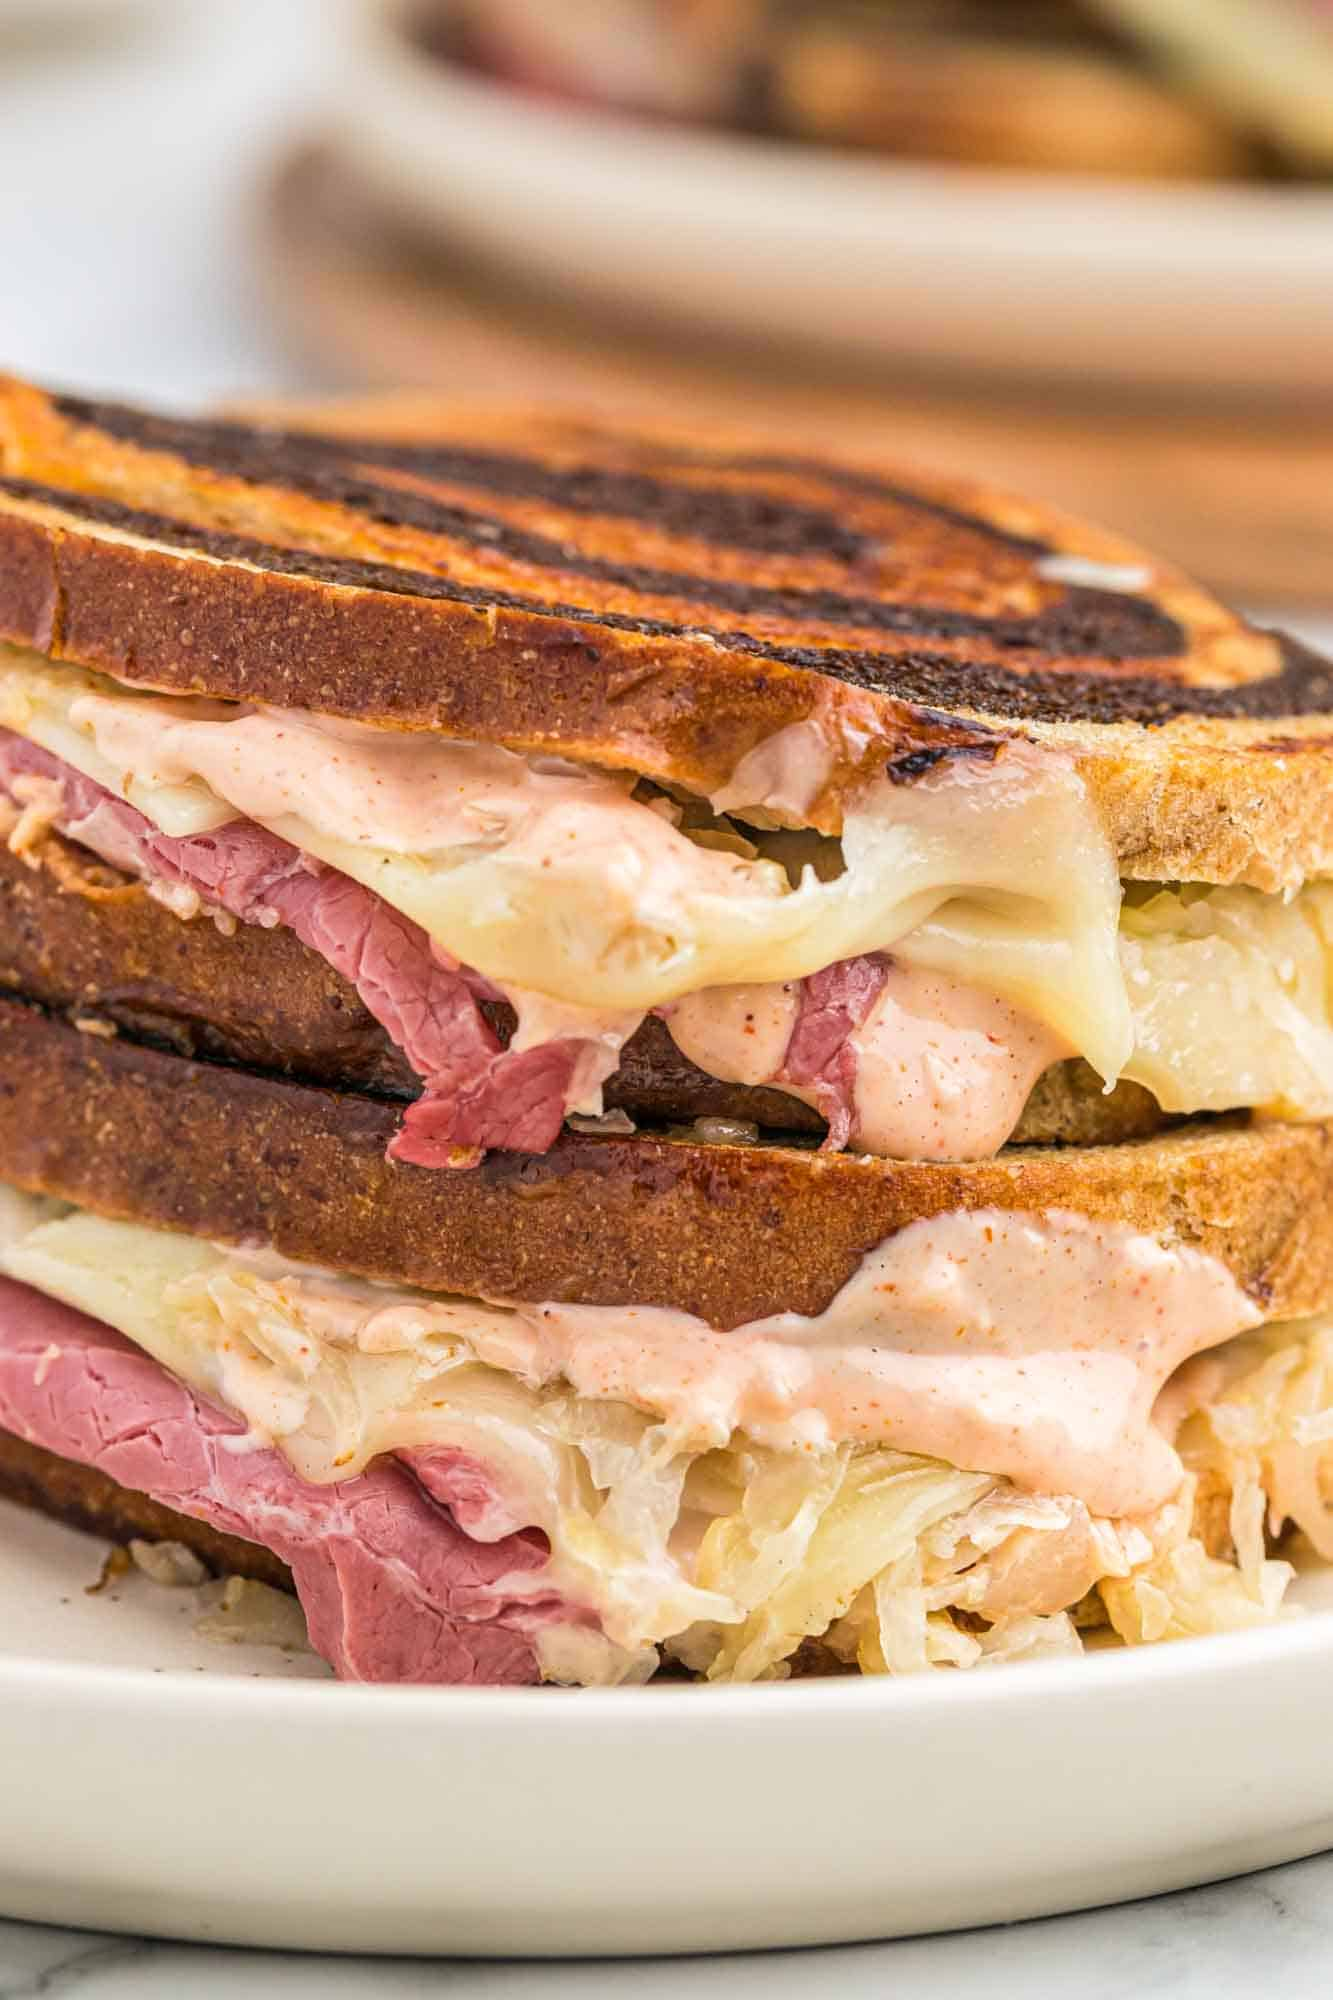 Stacked Reuben sandwiches served on a white plate